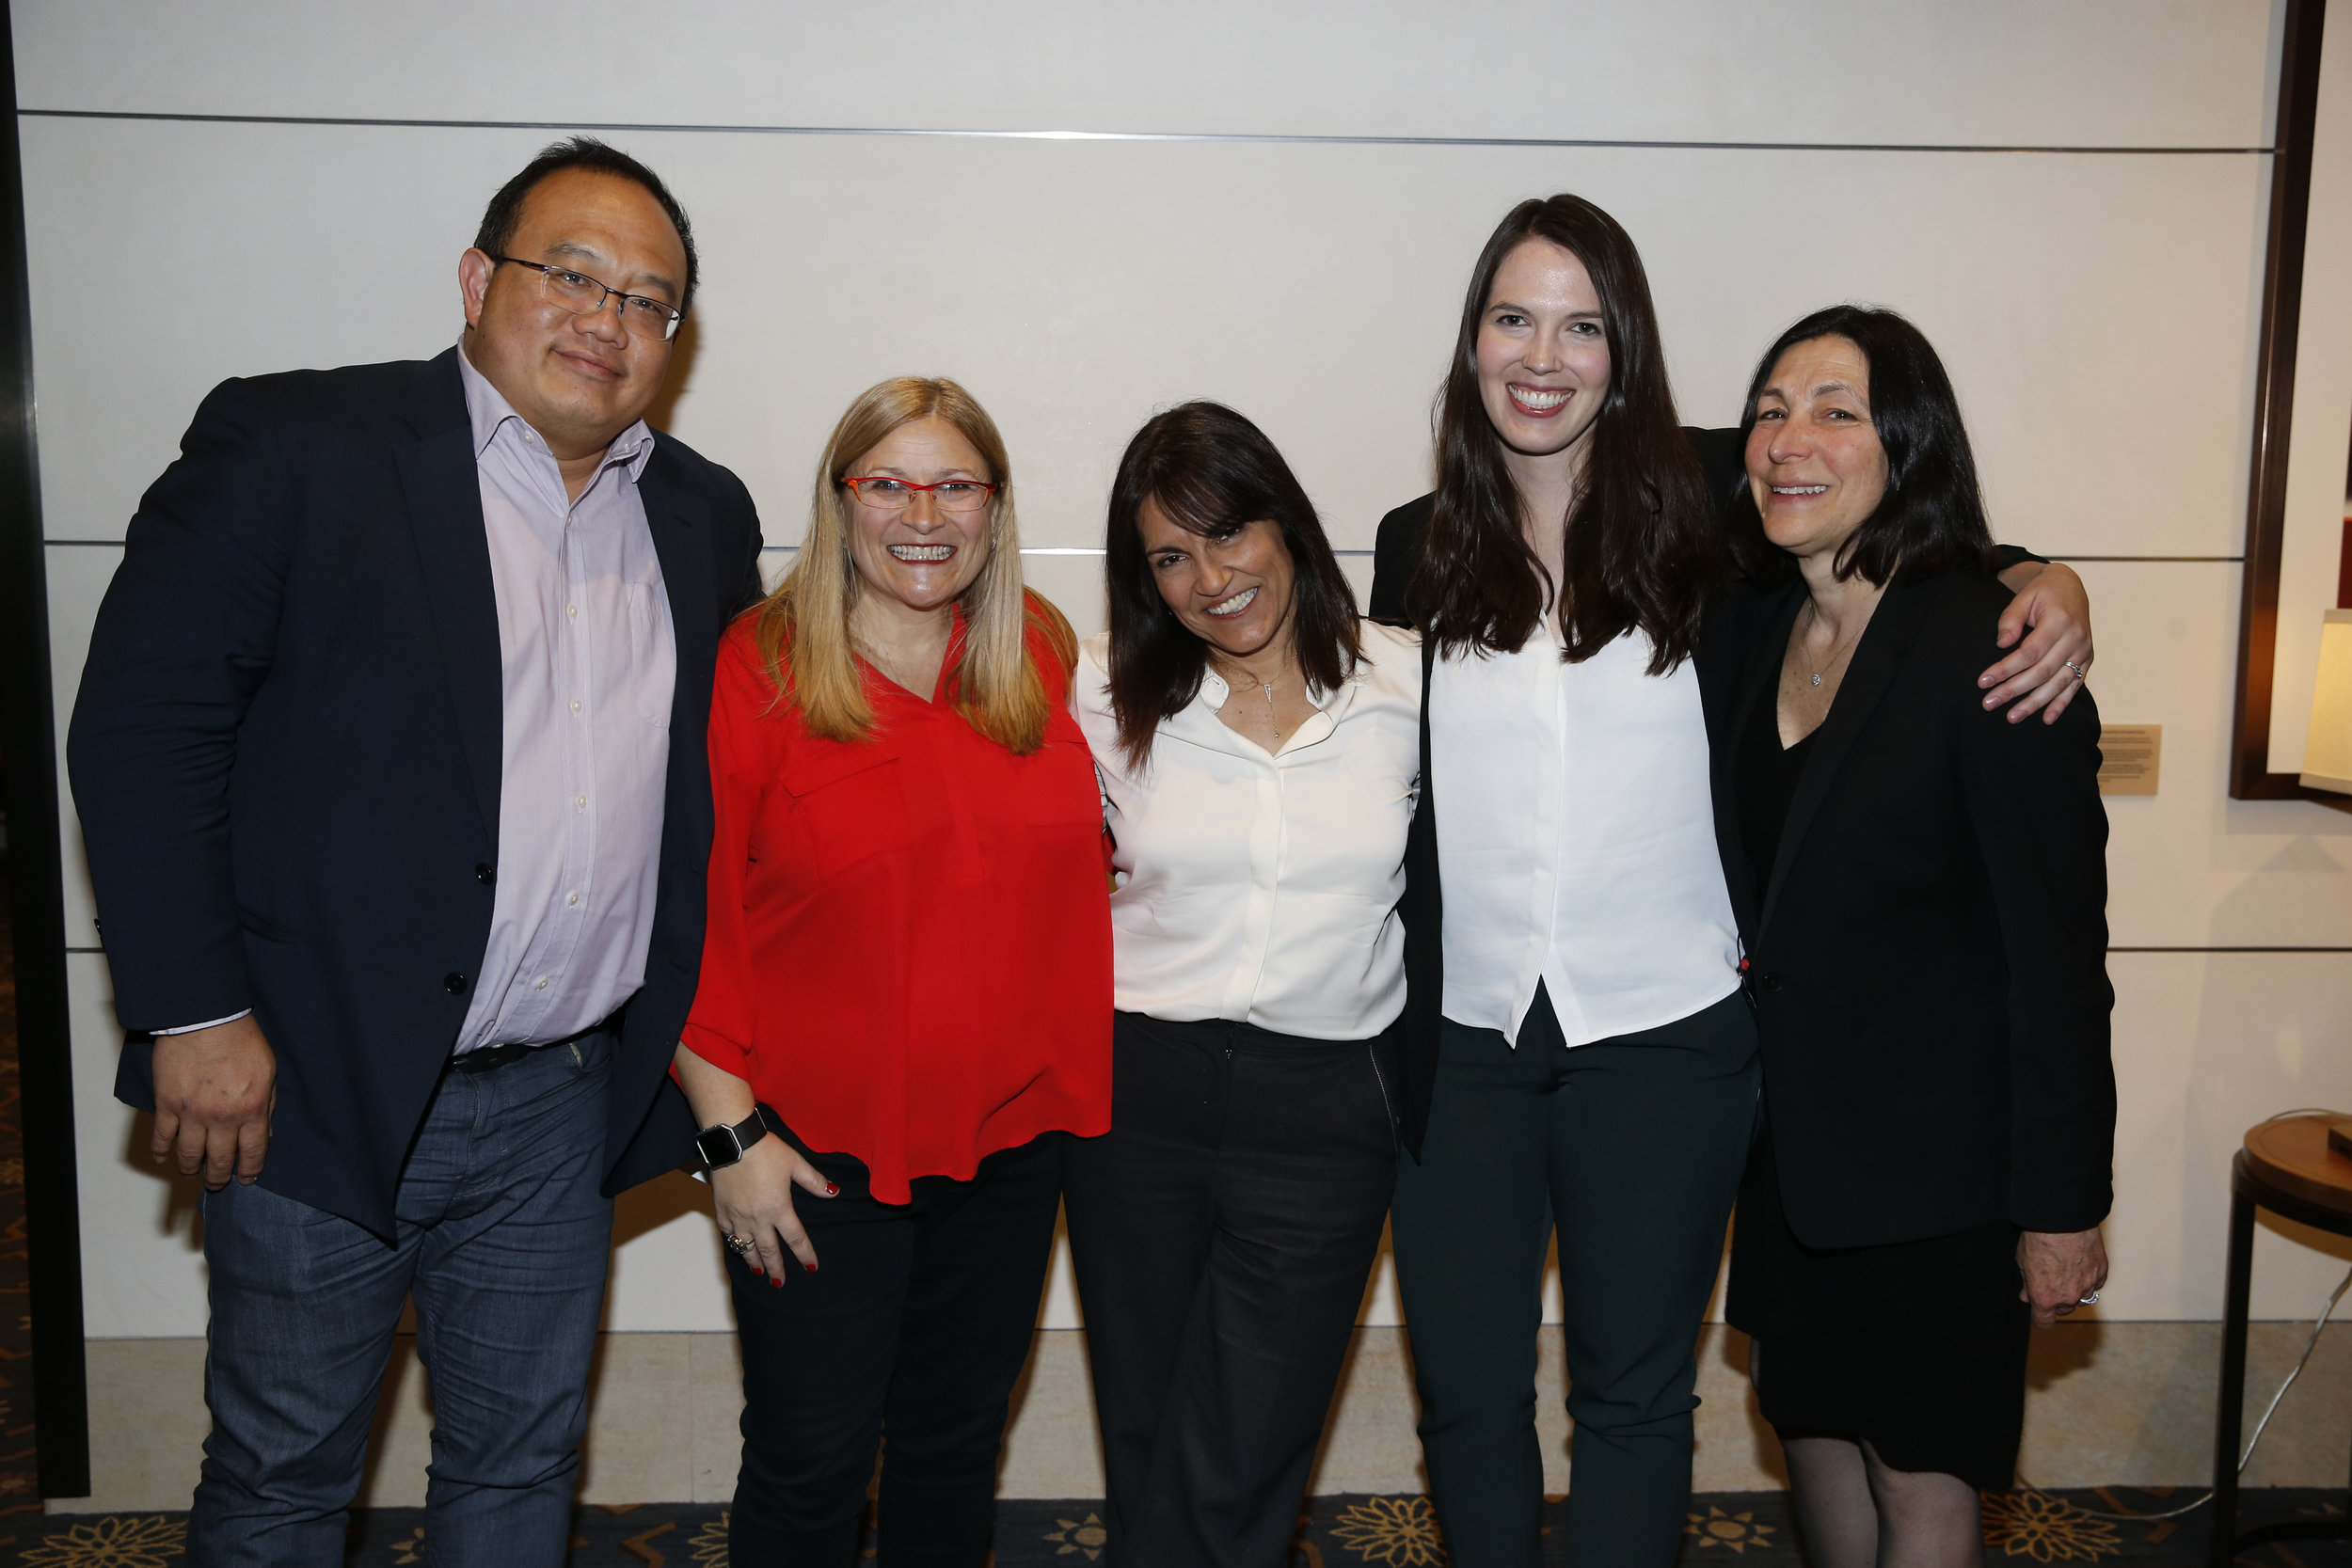 Screenwriter, Director, and Professor at UCLA George Huang (left), Co-Director of CSS Kim Wilson (center left), Founder and Executive Director of CSS Yalda T. Uhls (center), Co-Director Colleen Russo Johnson (center right), Chief Administrative Officer of CSS Louise Zeitzew (right)